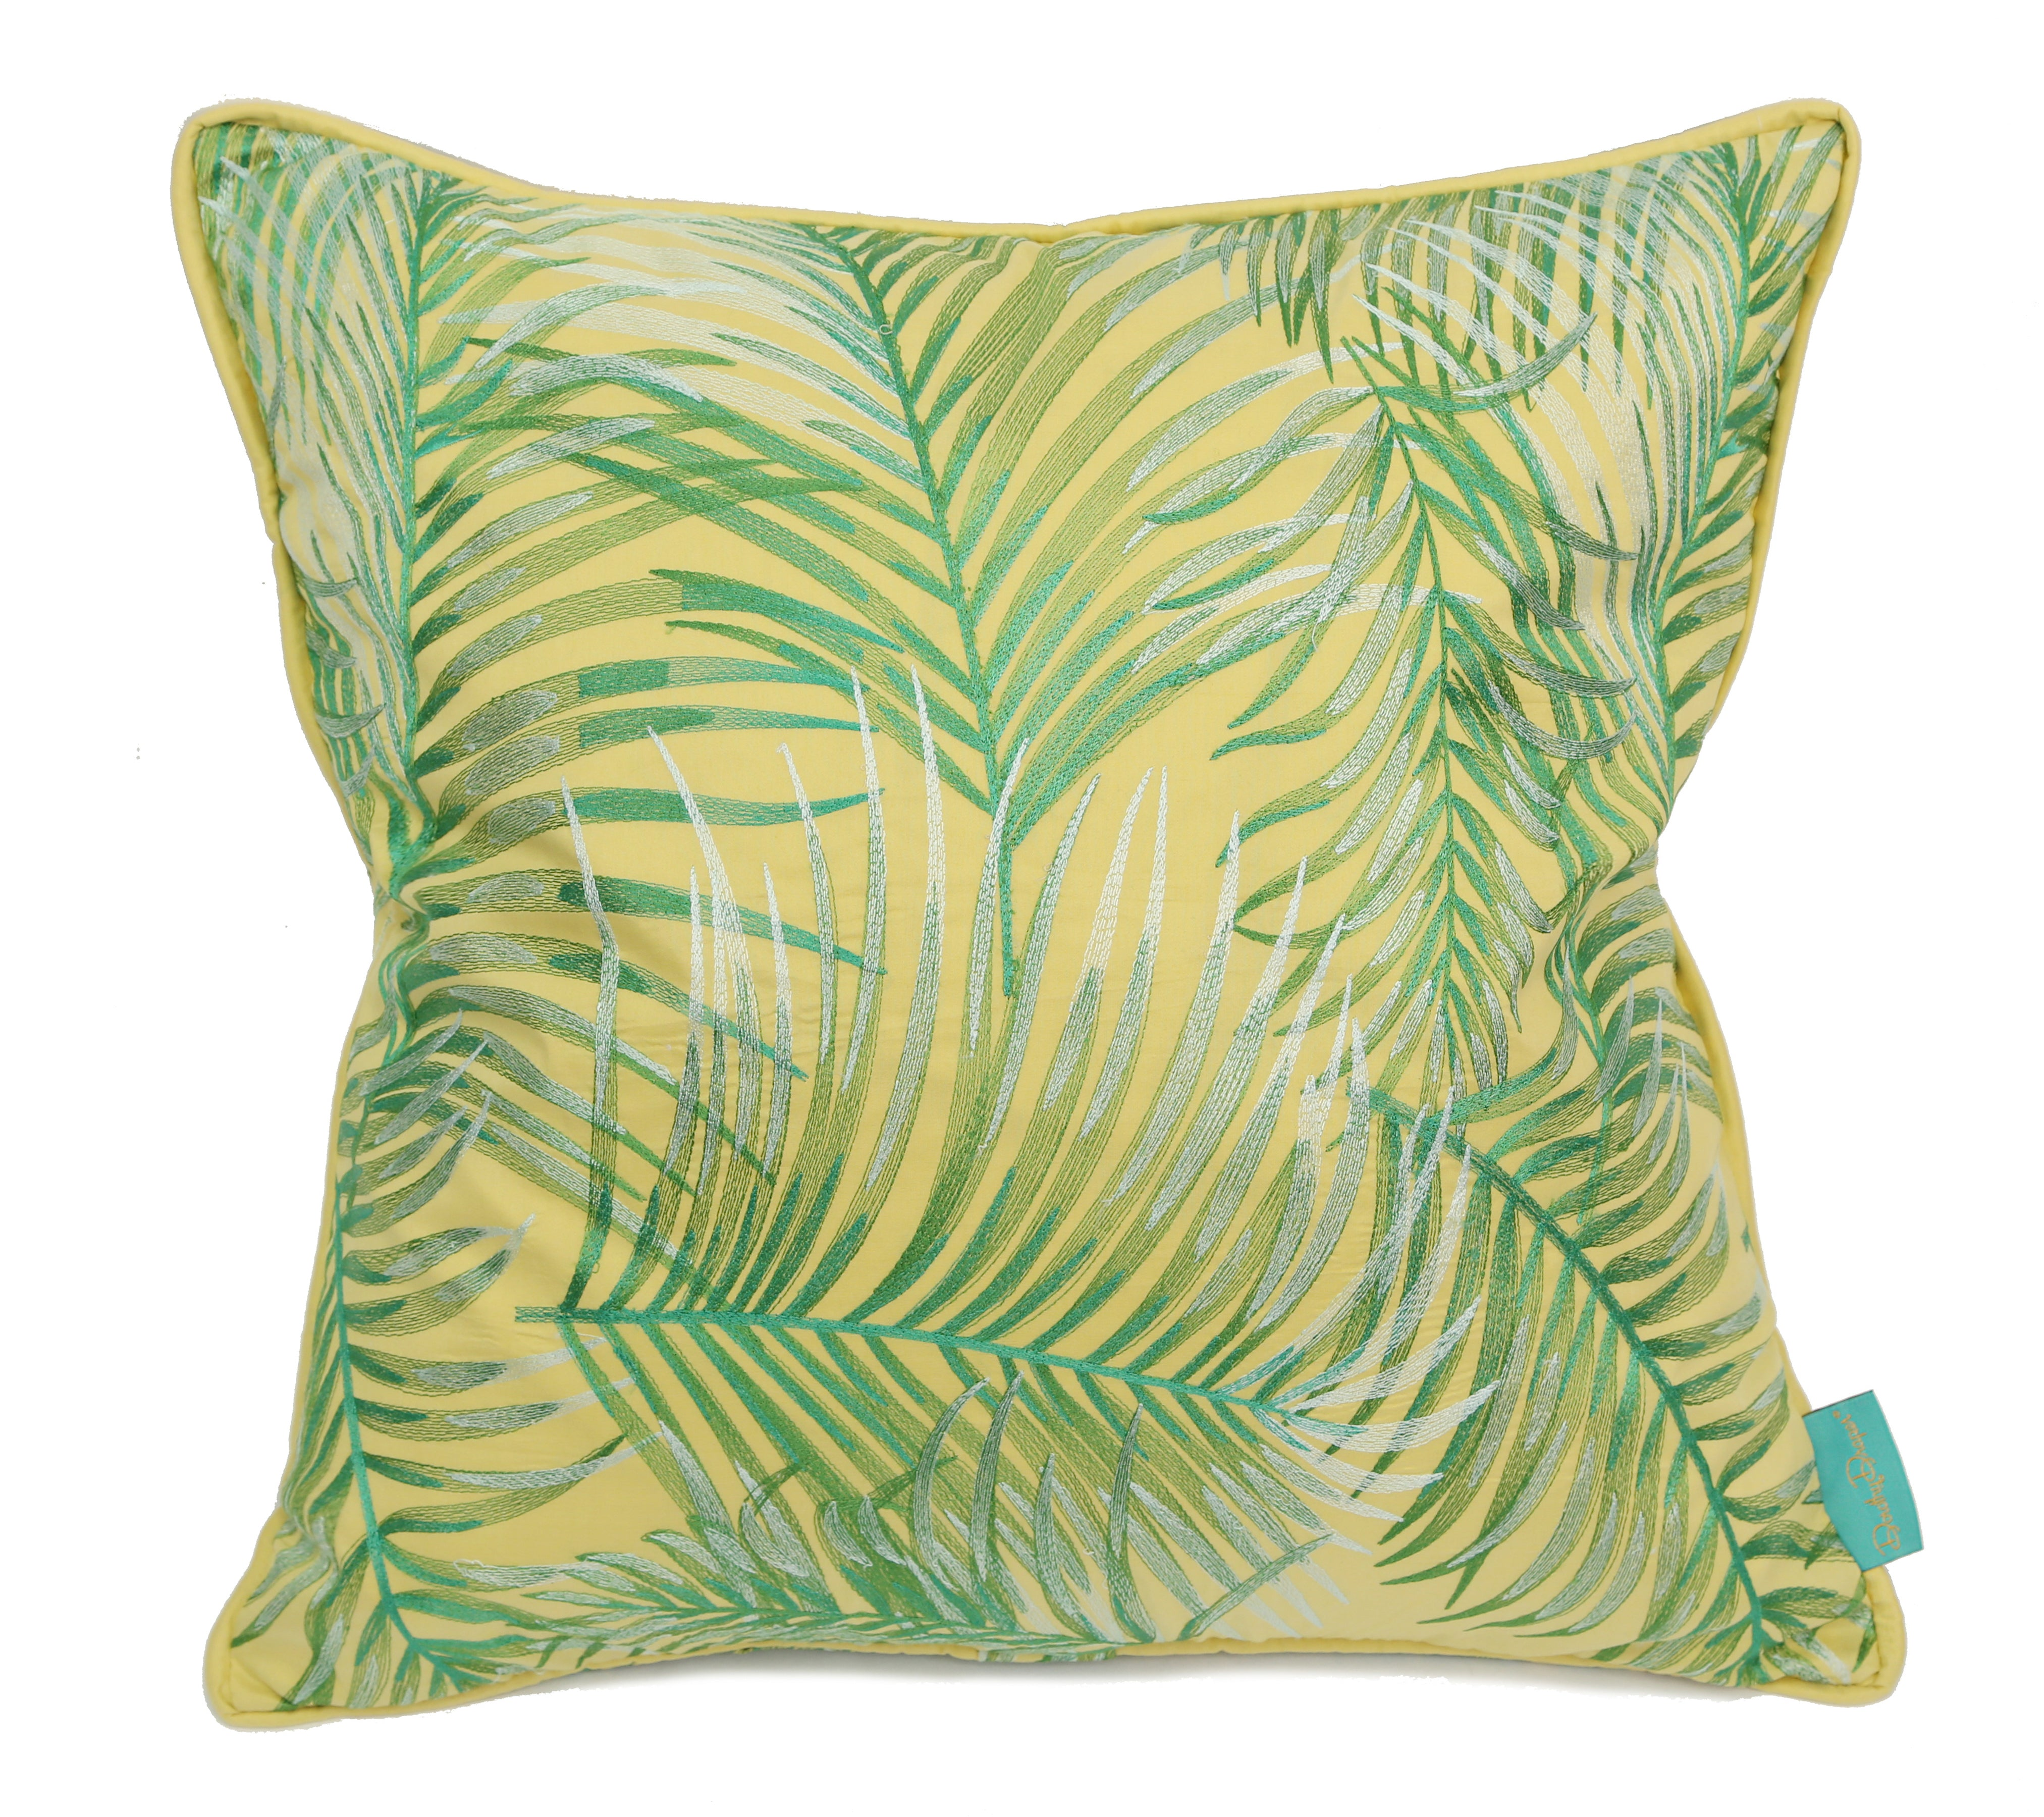 Robellini Silk Embroidered Throw Pillow Cover - Yellow - Carleton Varney